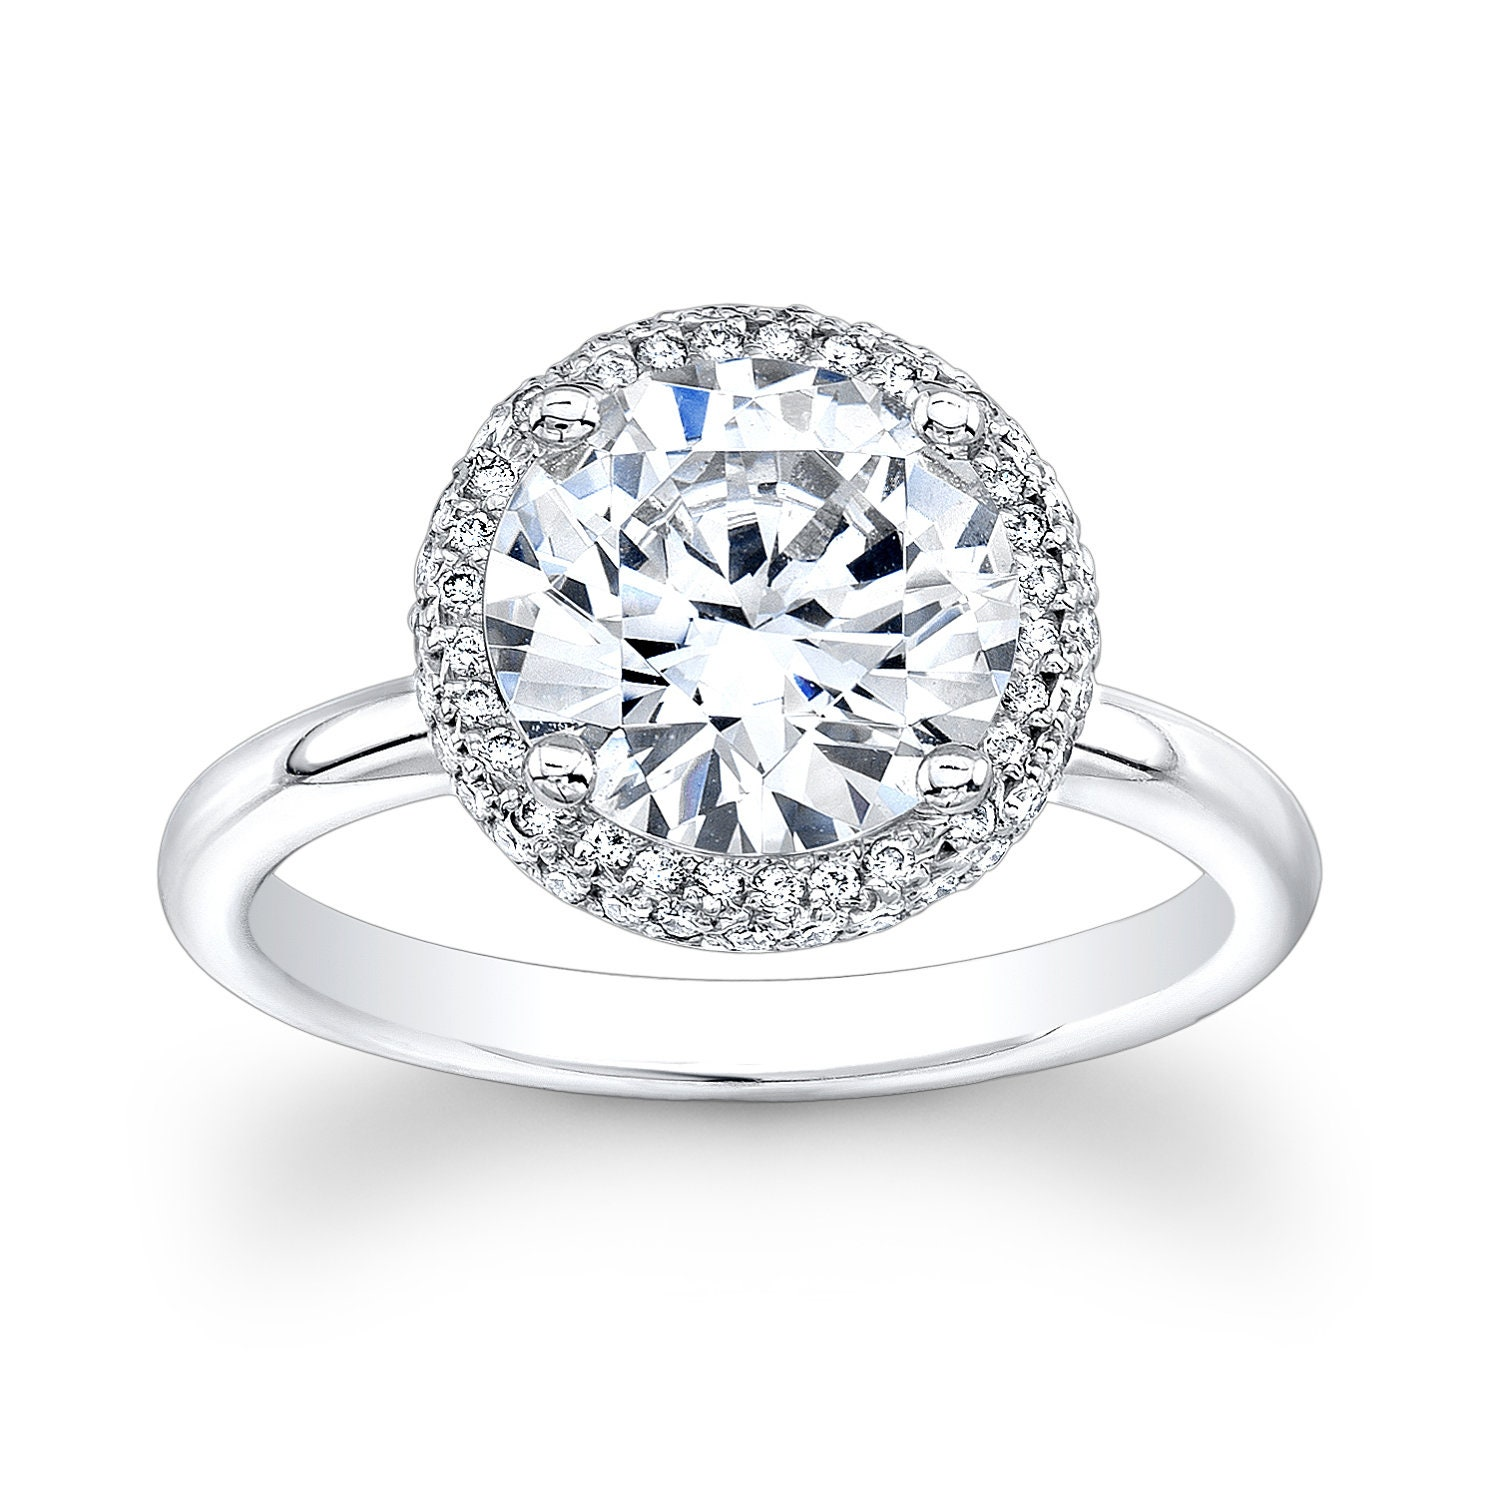 La s 18kt white gold diamond halo engagement ring with 2 00